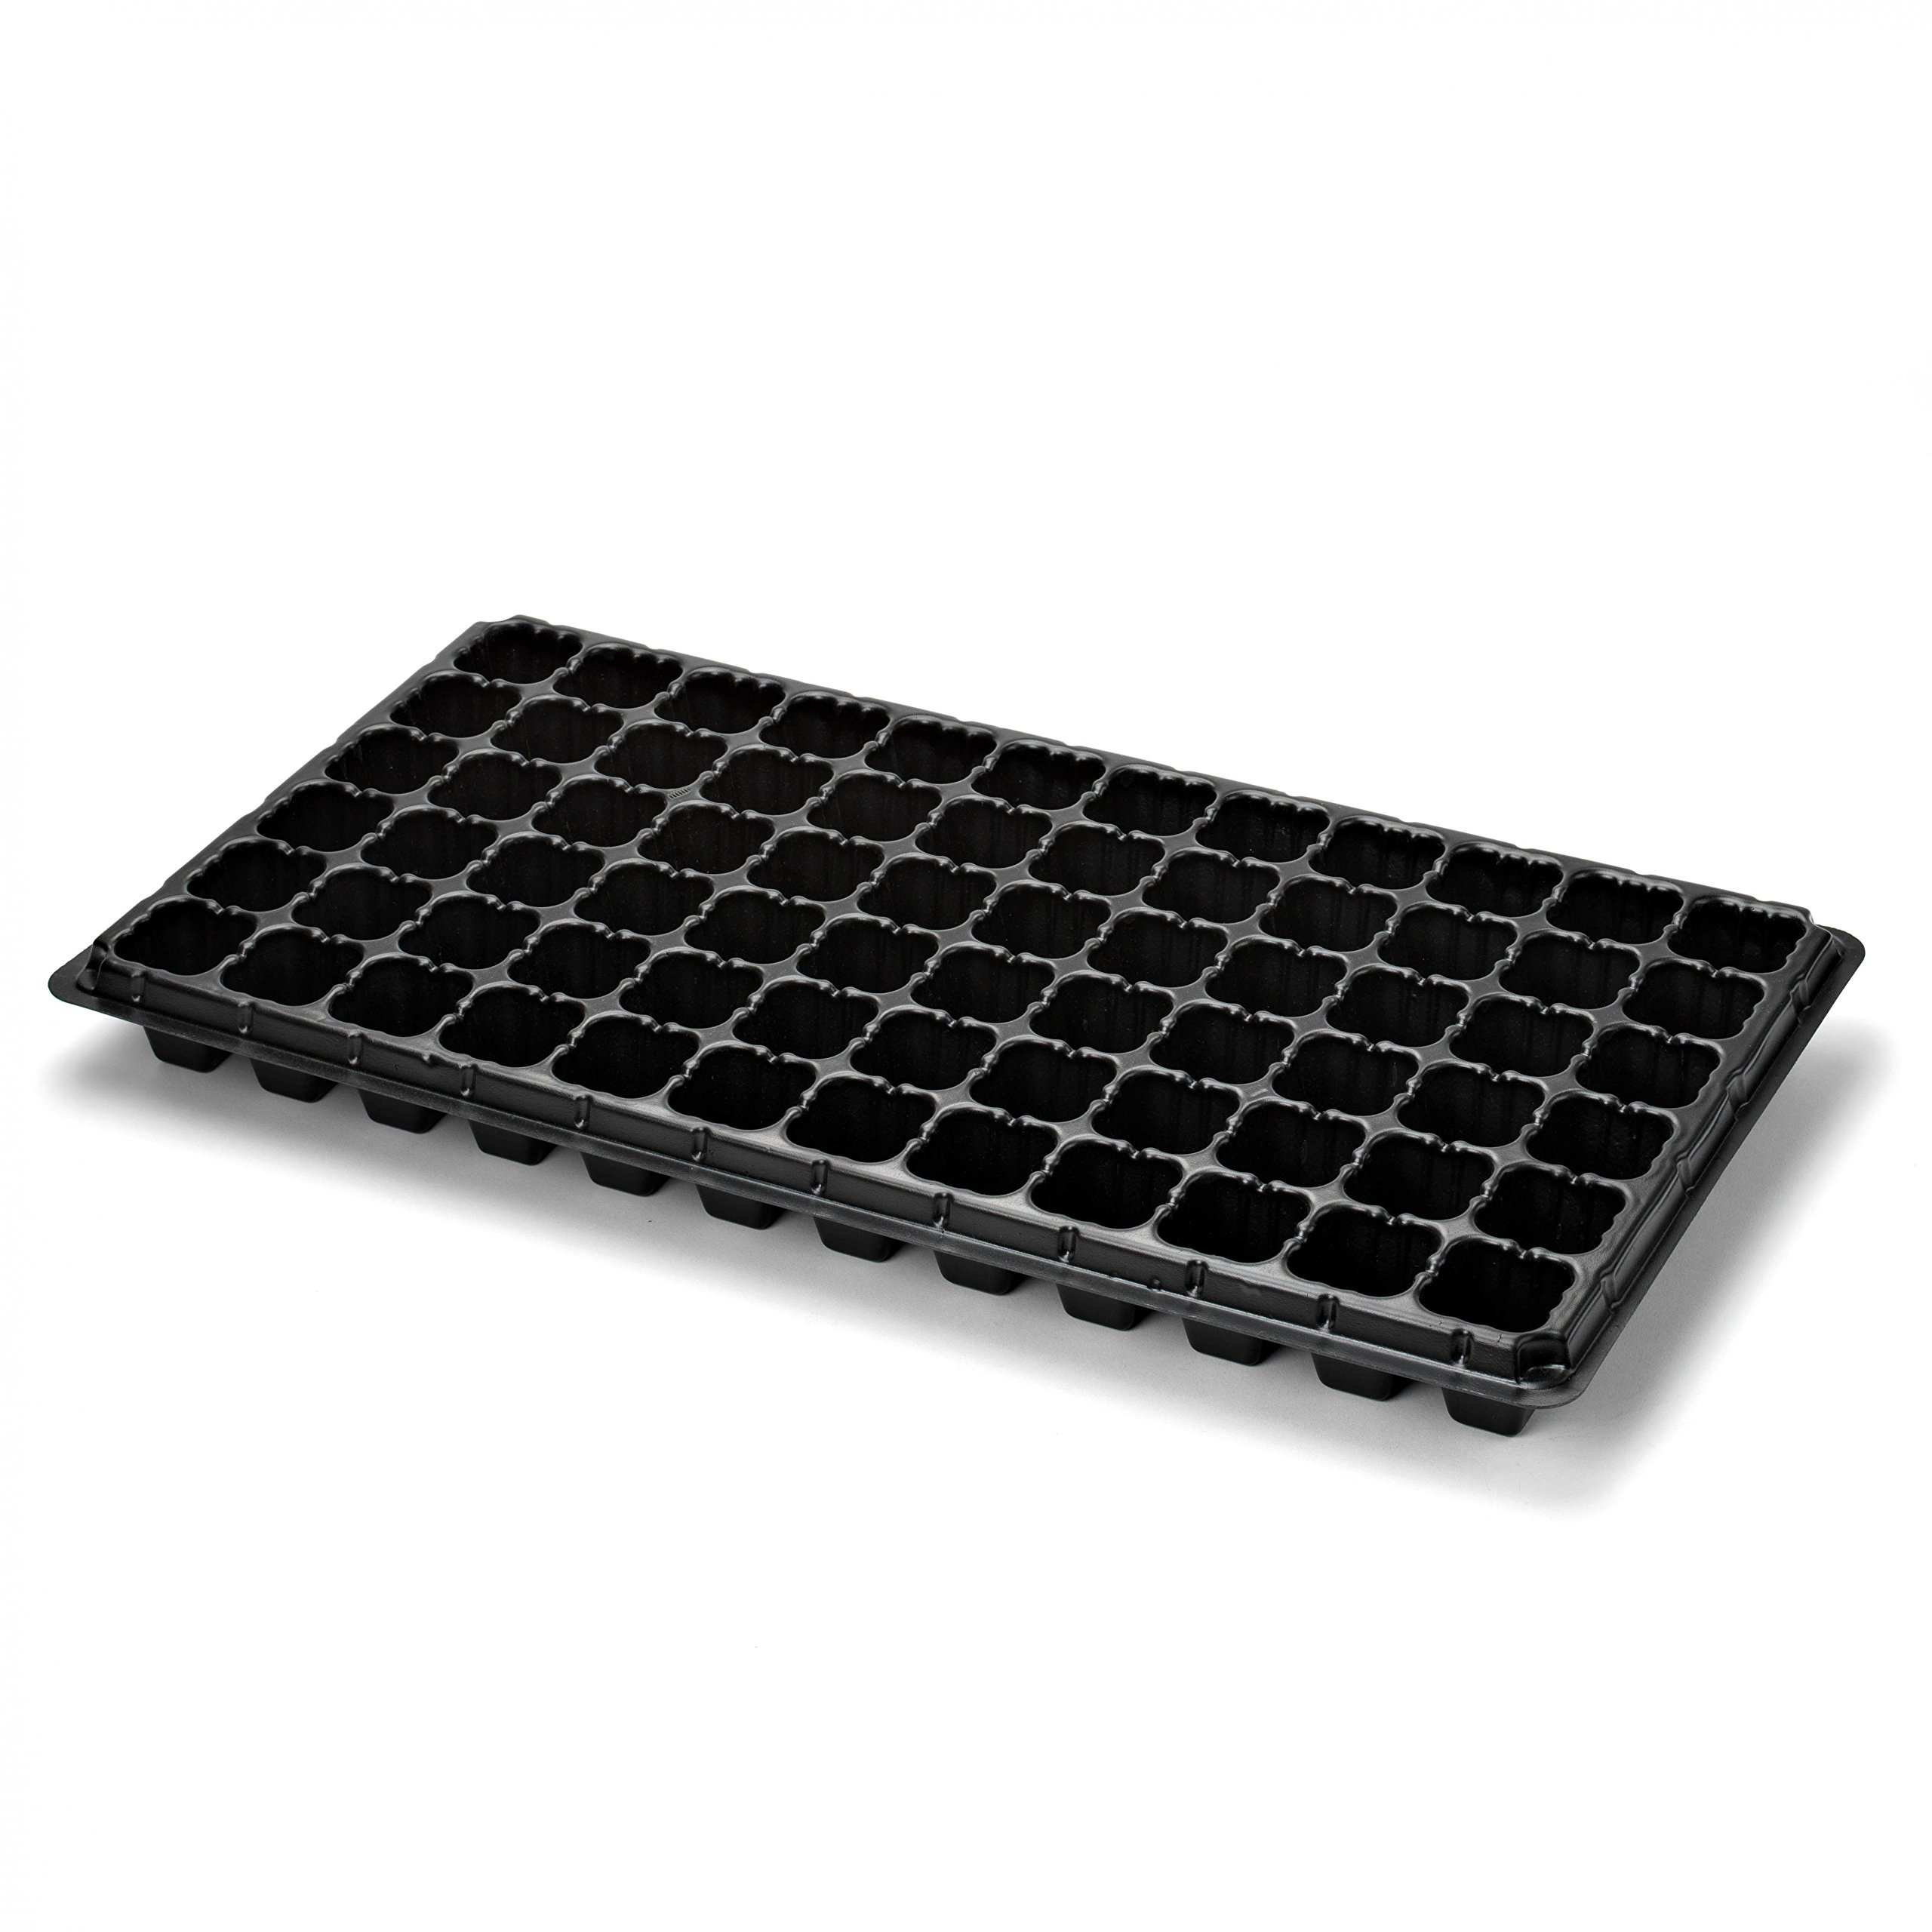 72 Cell Seed Starter Tray - 5 Pack - Extra Strength 1020 Starting Trays for Planting Seedlings, Propagation, Germination Plugs by Bootstrap Farmer